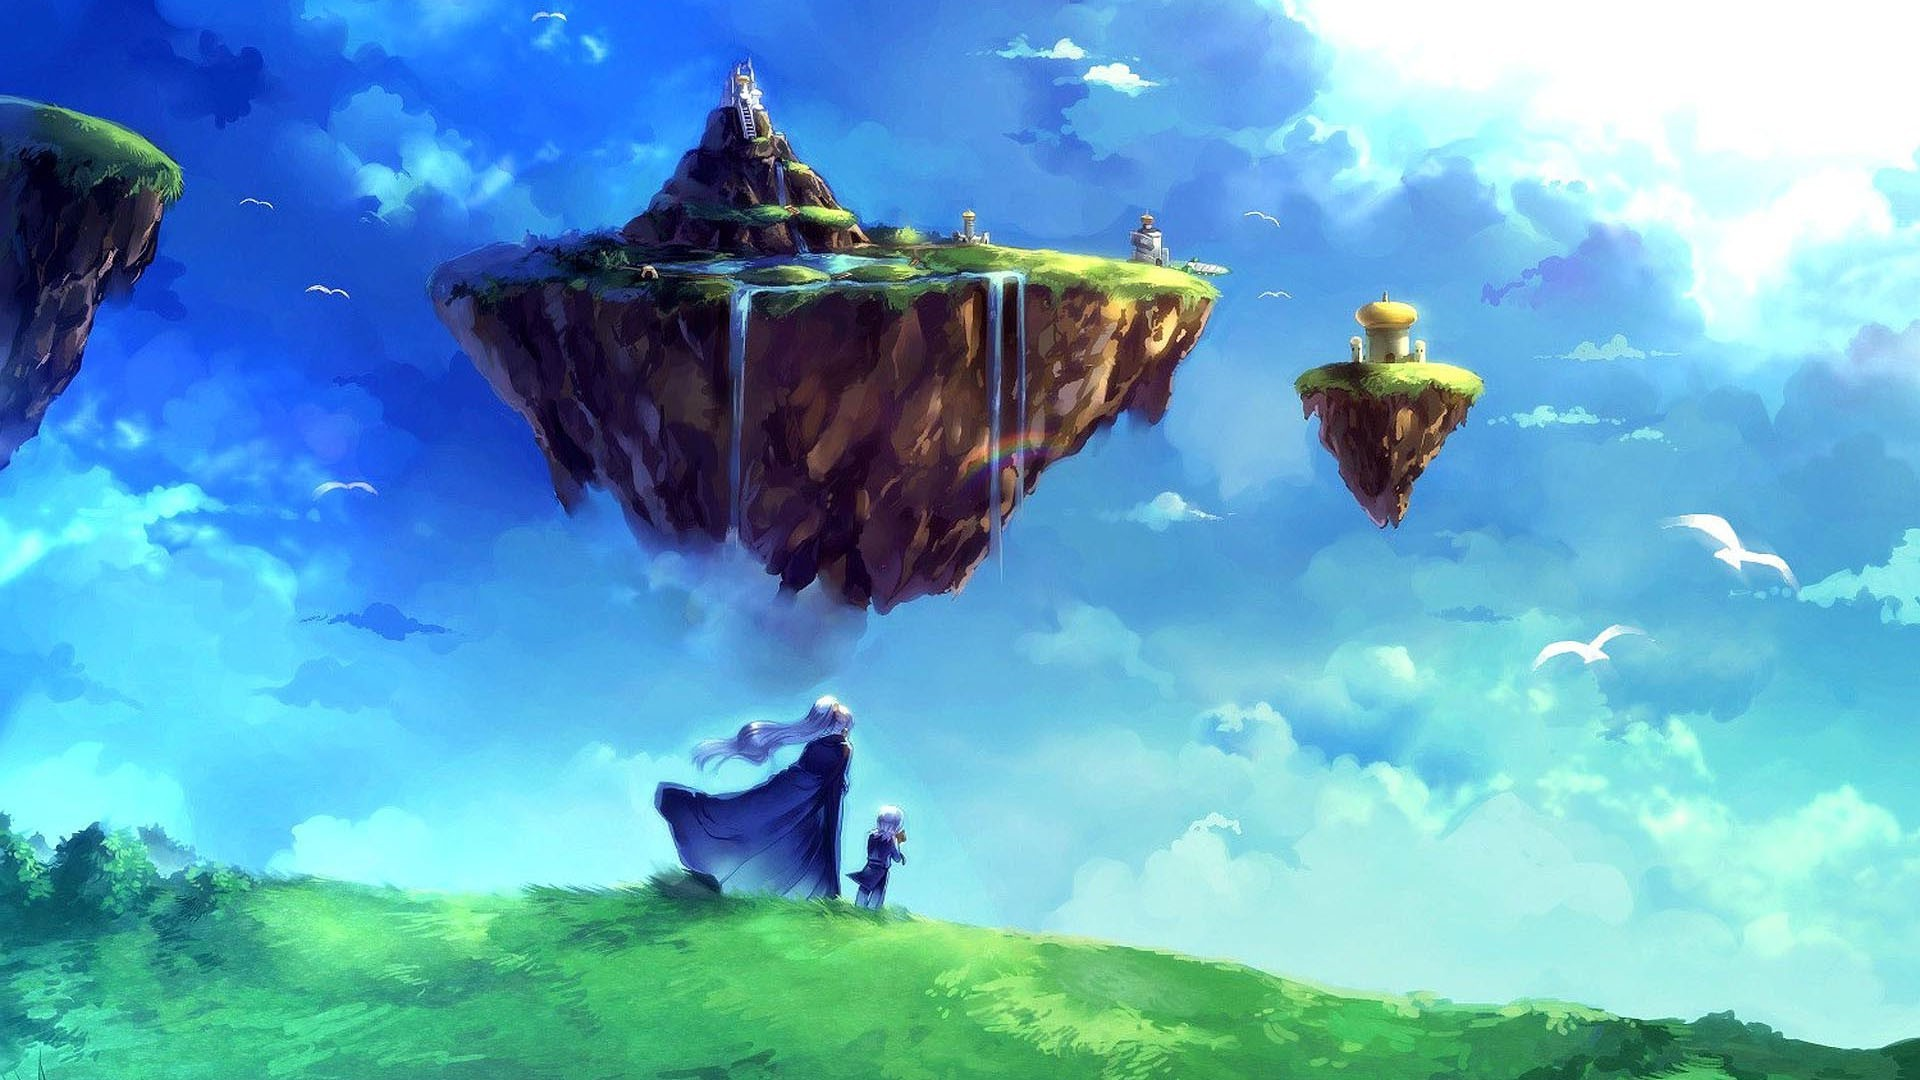 One Piece New World Hd Wallpaper Anime Sky Nature Floating Island Chrono Trigger Janus